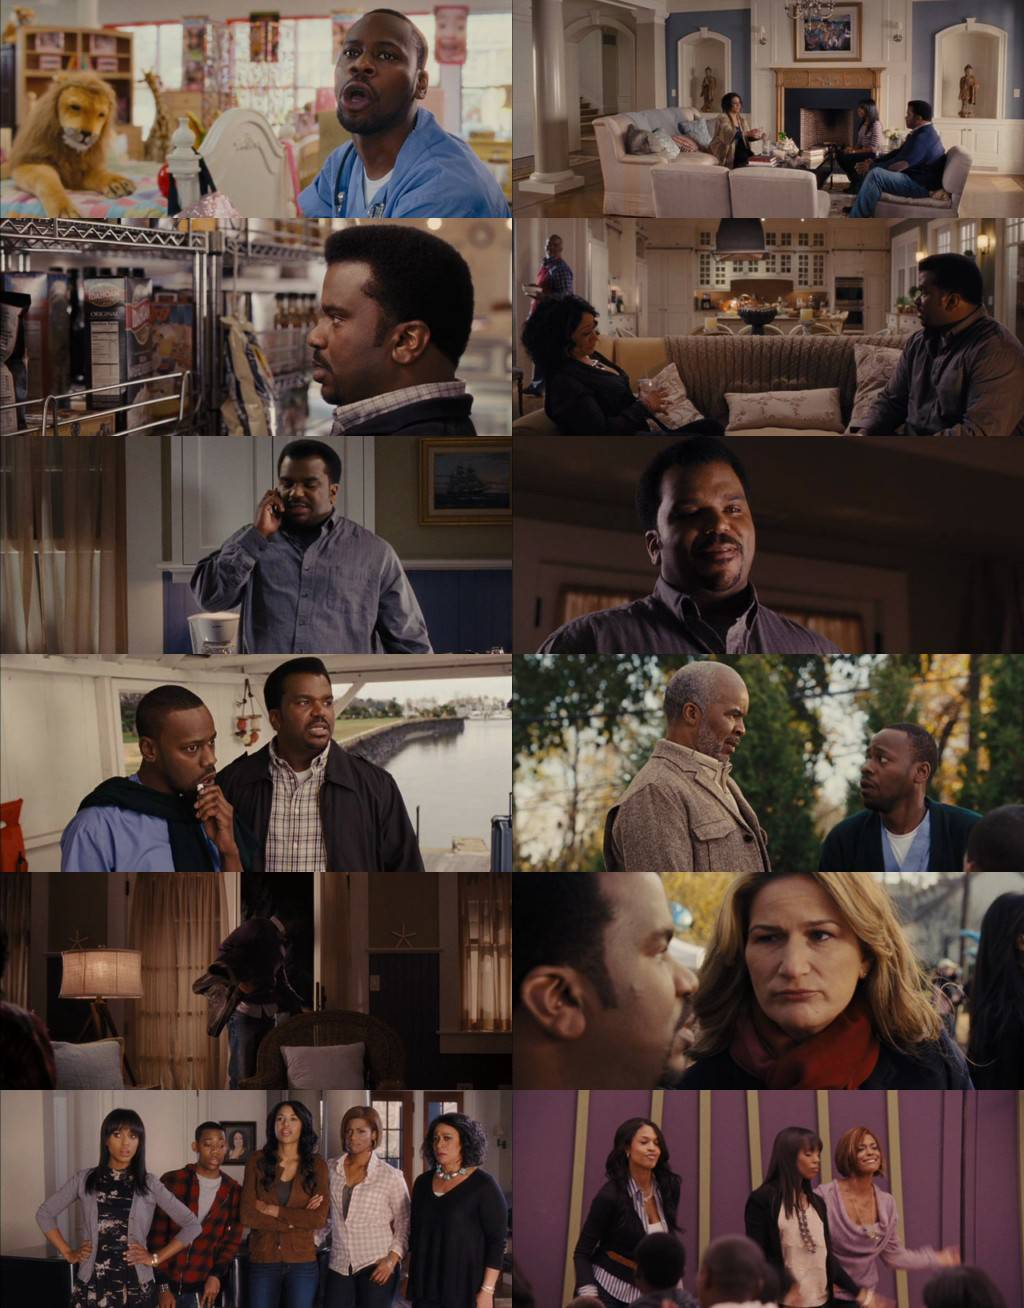 Download Peeples (2013) DVDRip XviD-iGNiTiON 700MB